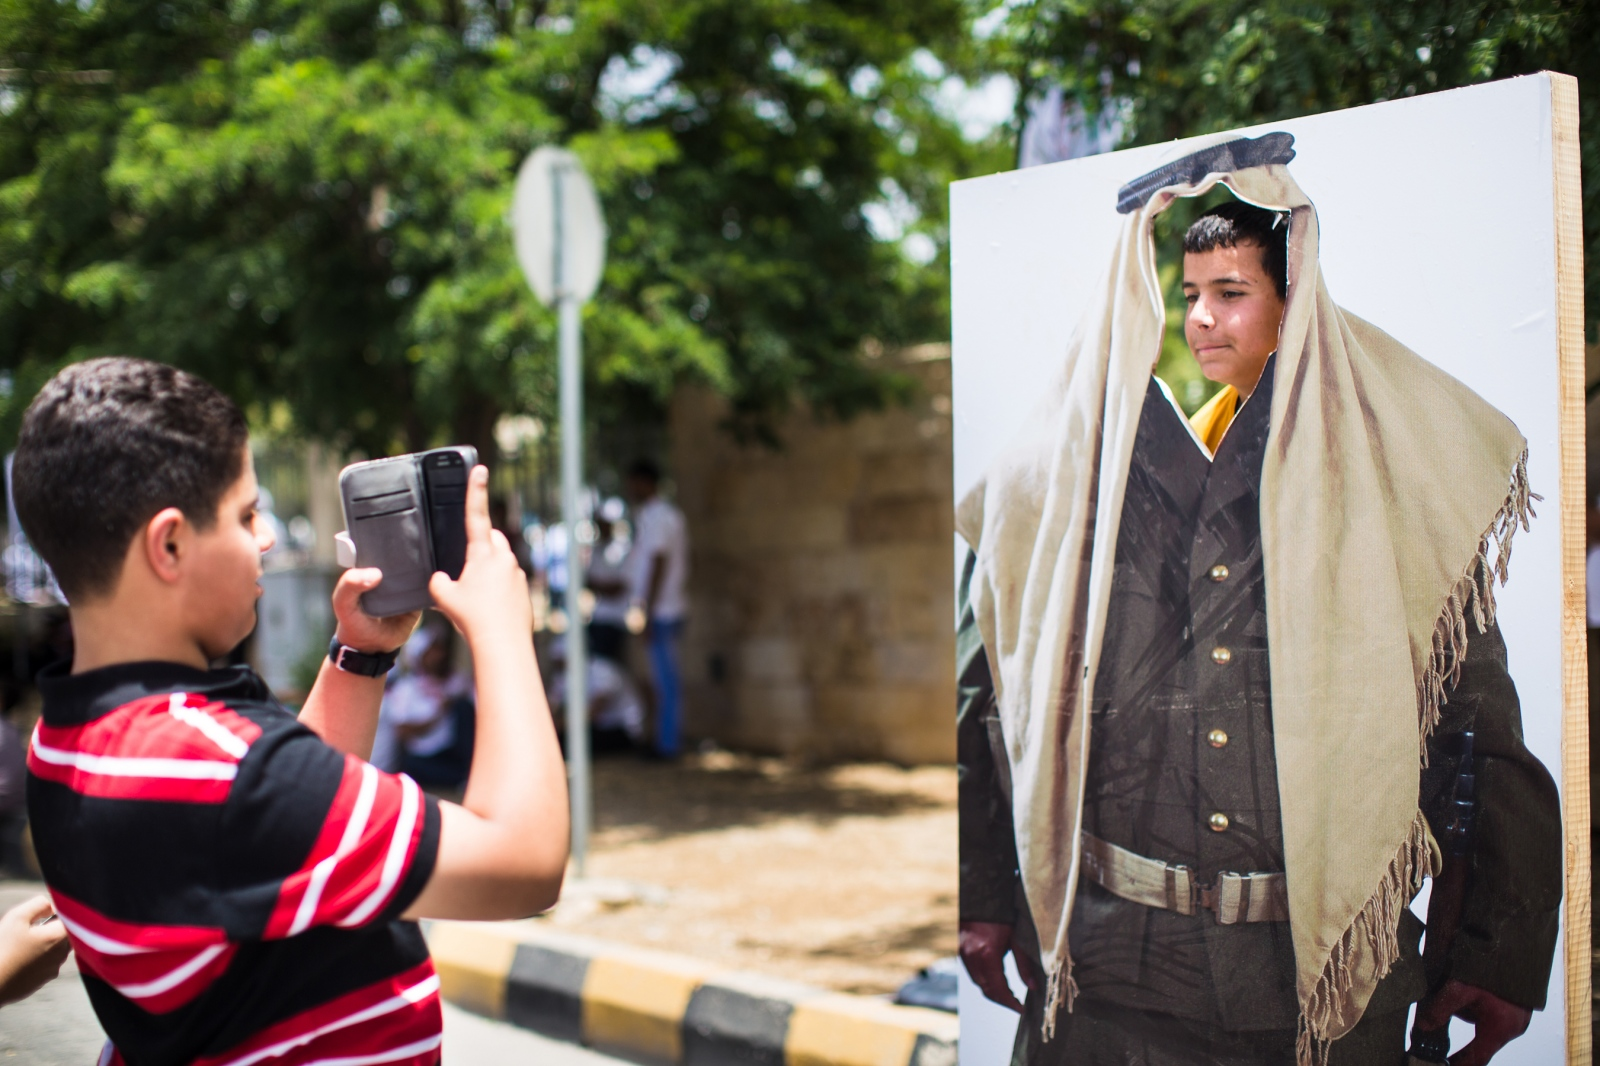 Two brothers take photos of each other in a face cutout of a bedouin soldier at a celebration for the 100th anniversary of the Great Arab Revolt in Amman, Jordan, on June 3, 2016.